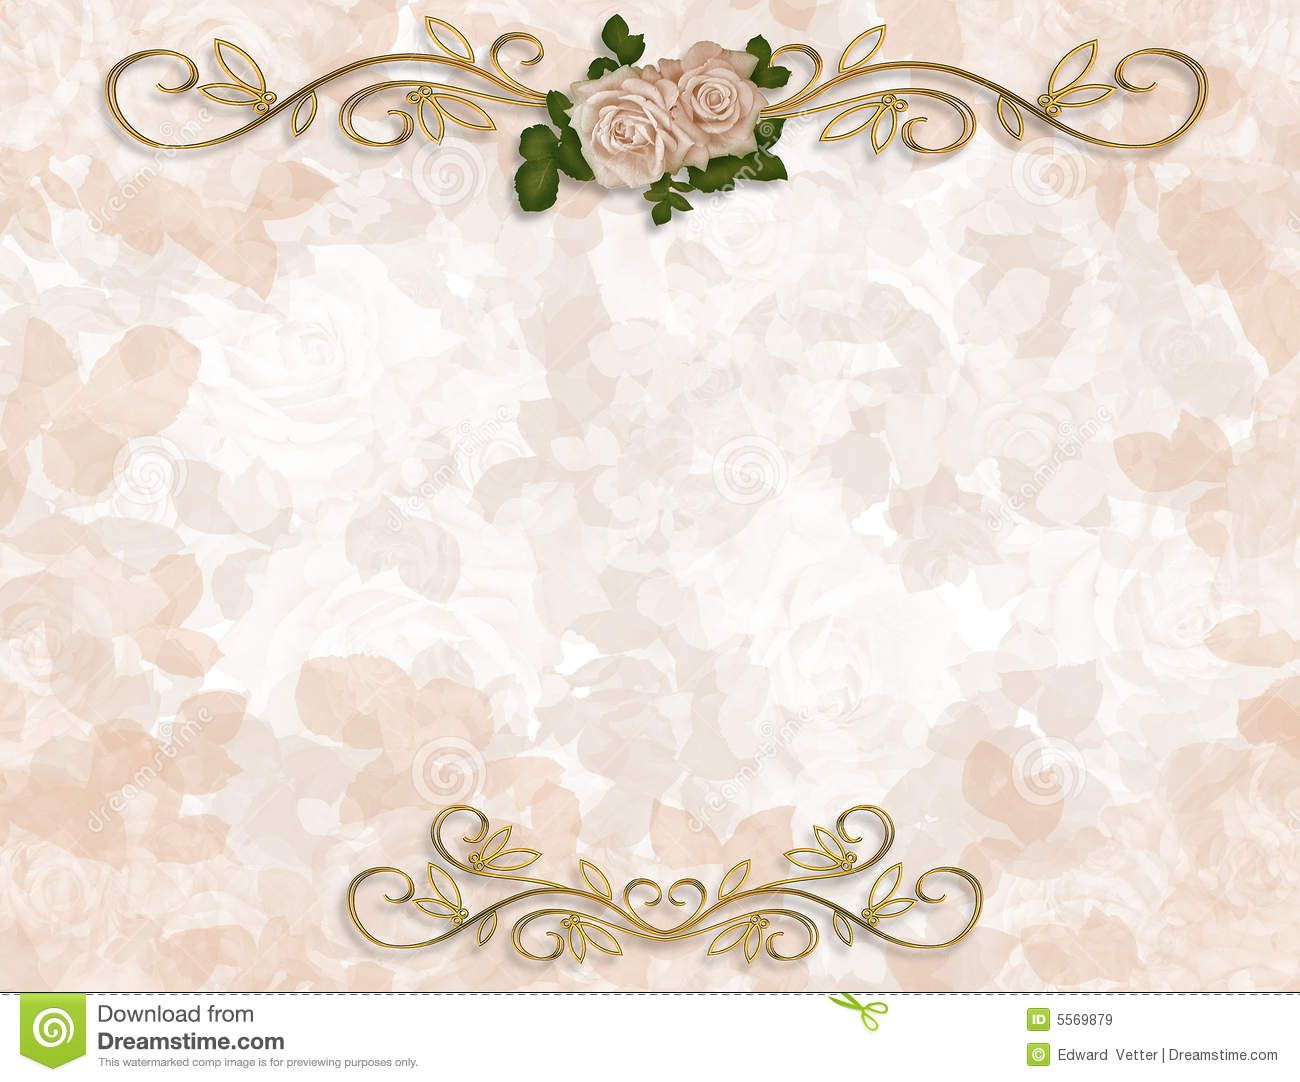 Wedding invitation cards background images sample s pinterest wedding invitation cards background images sample stopboris Gallery